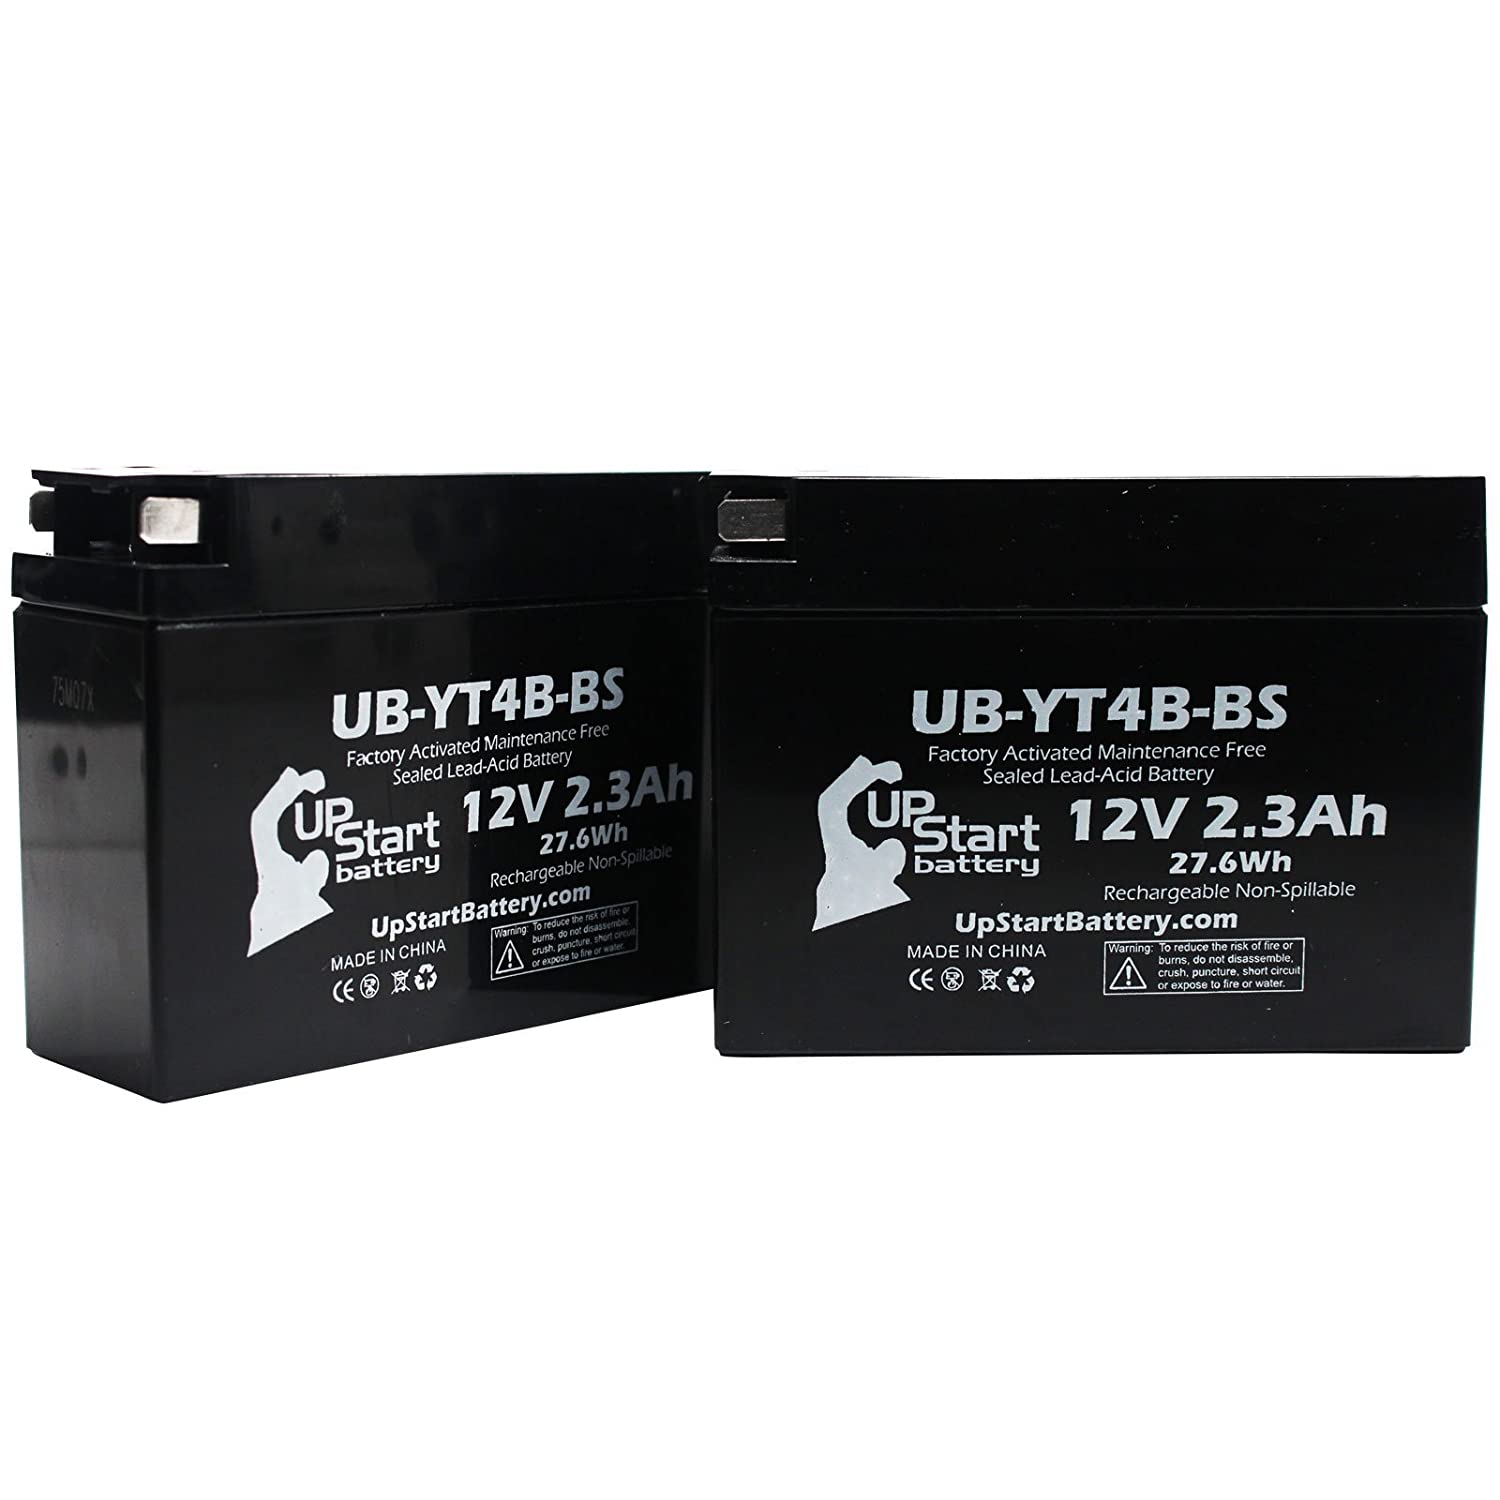 2-Pack Replacement 2007 Yamaha TTR90E Electric Start 90CC Factory Activated, Maintenance Free, Motorcycle Battery - 12V, 2.3Ah, UB-YT4B-BS Upstart Battery UB-YT4B-BS-2BATT-DL9